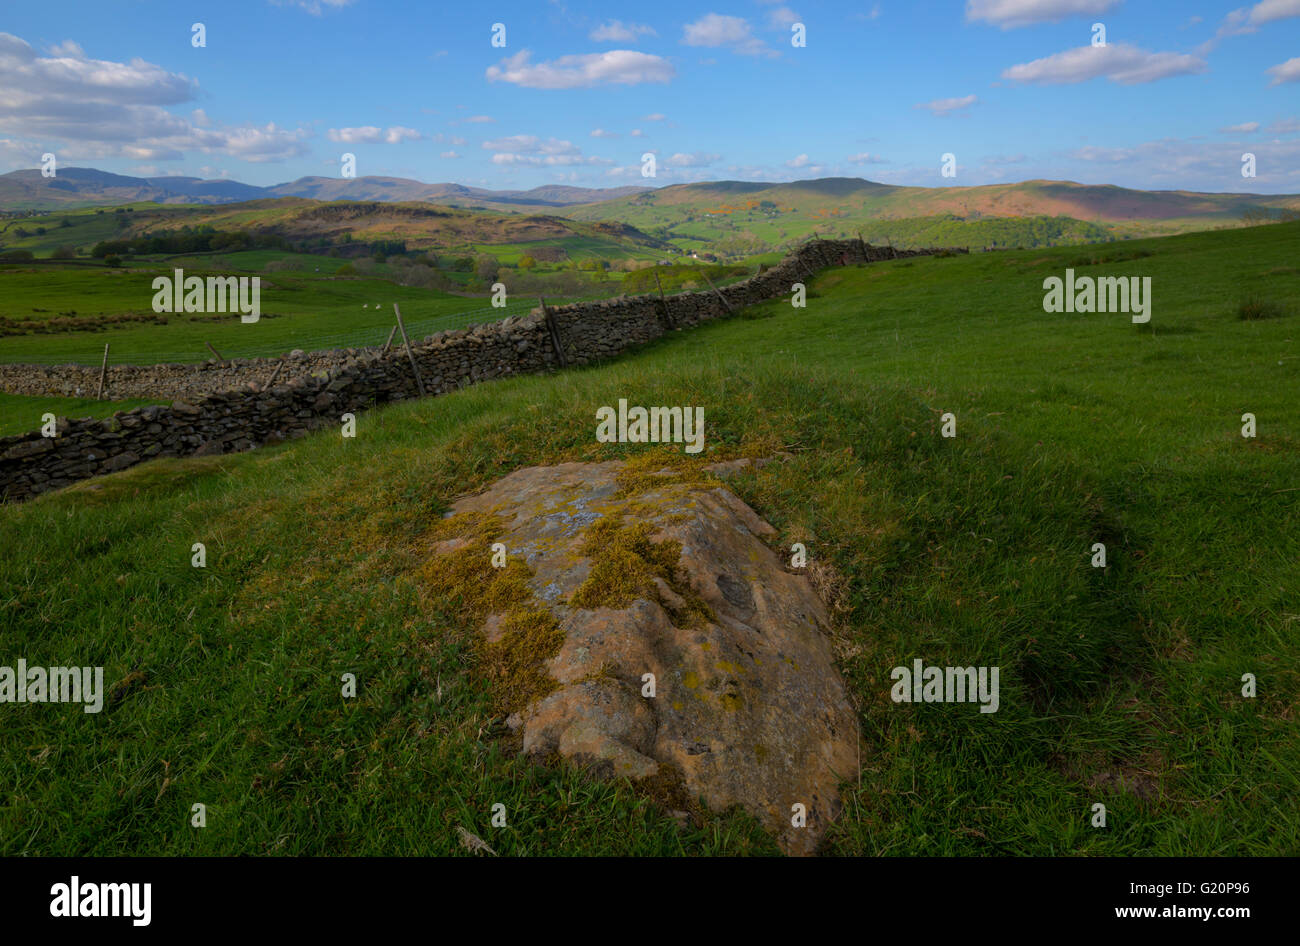 rural setting on farmland in the lake district near the village of crook - Stock Image